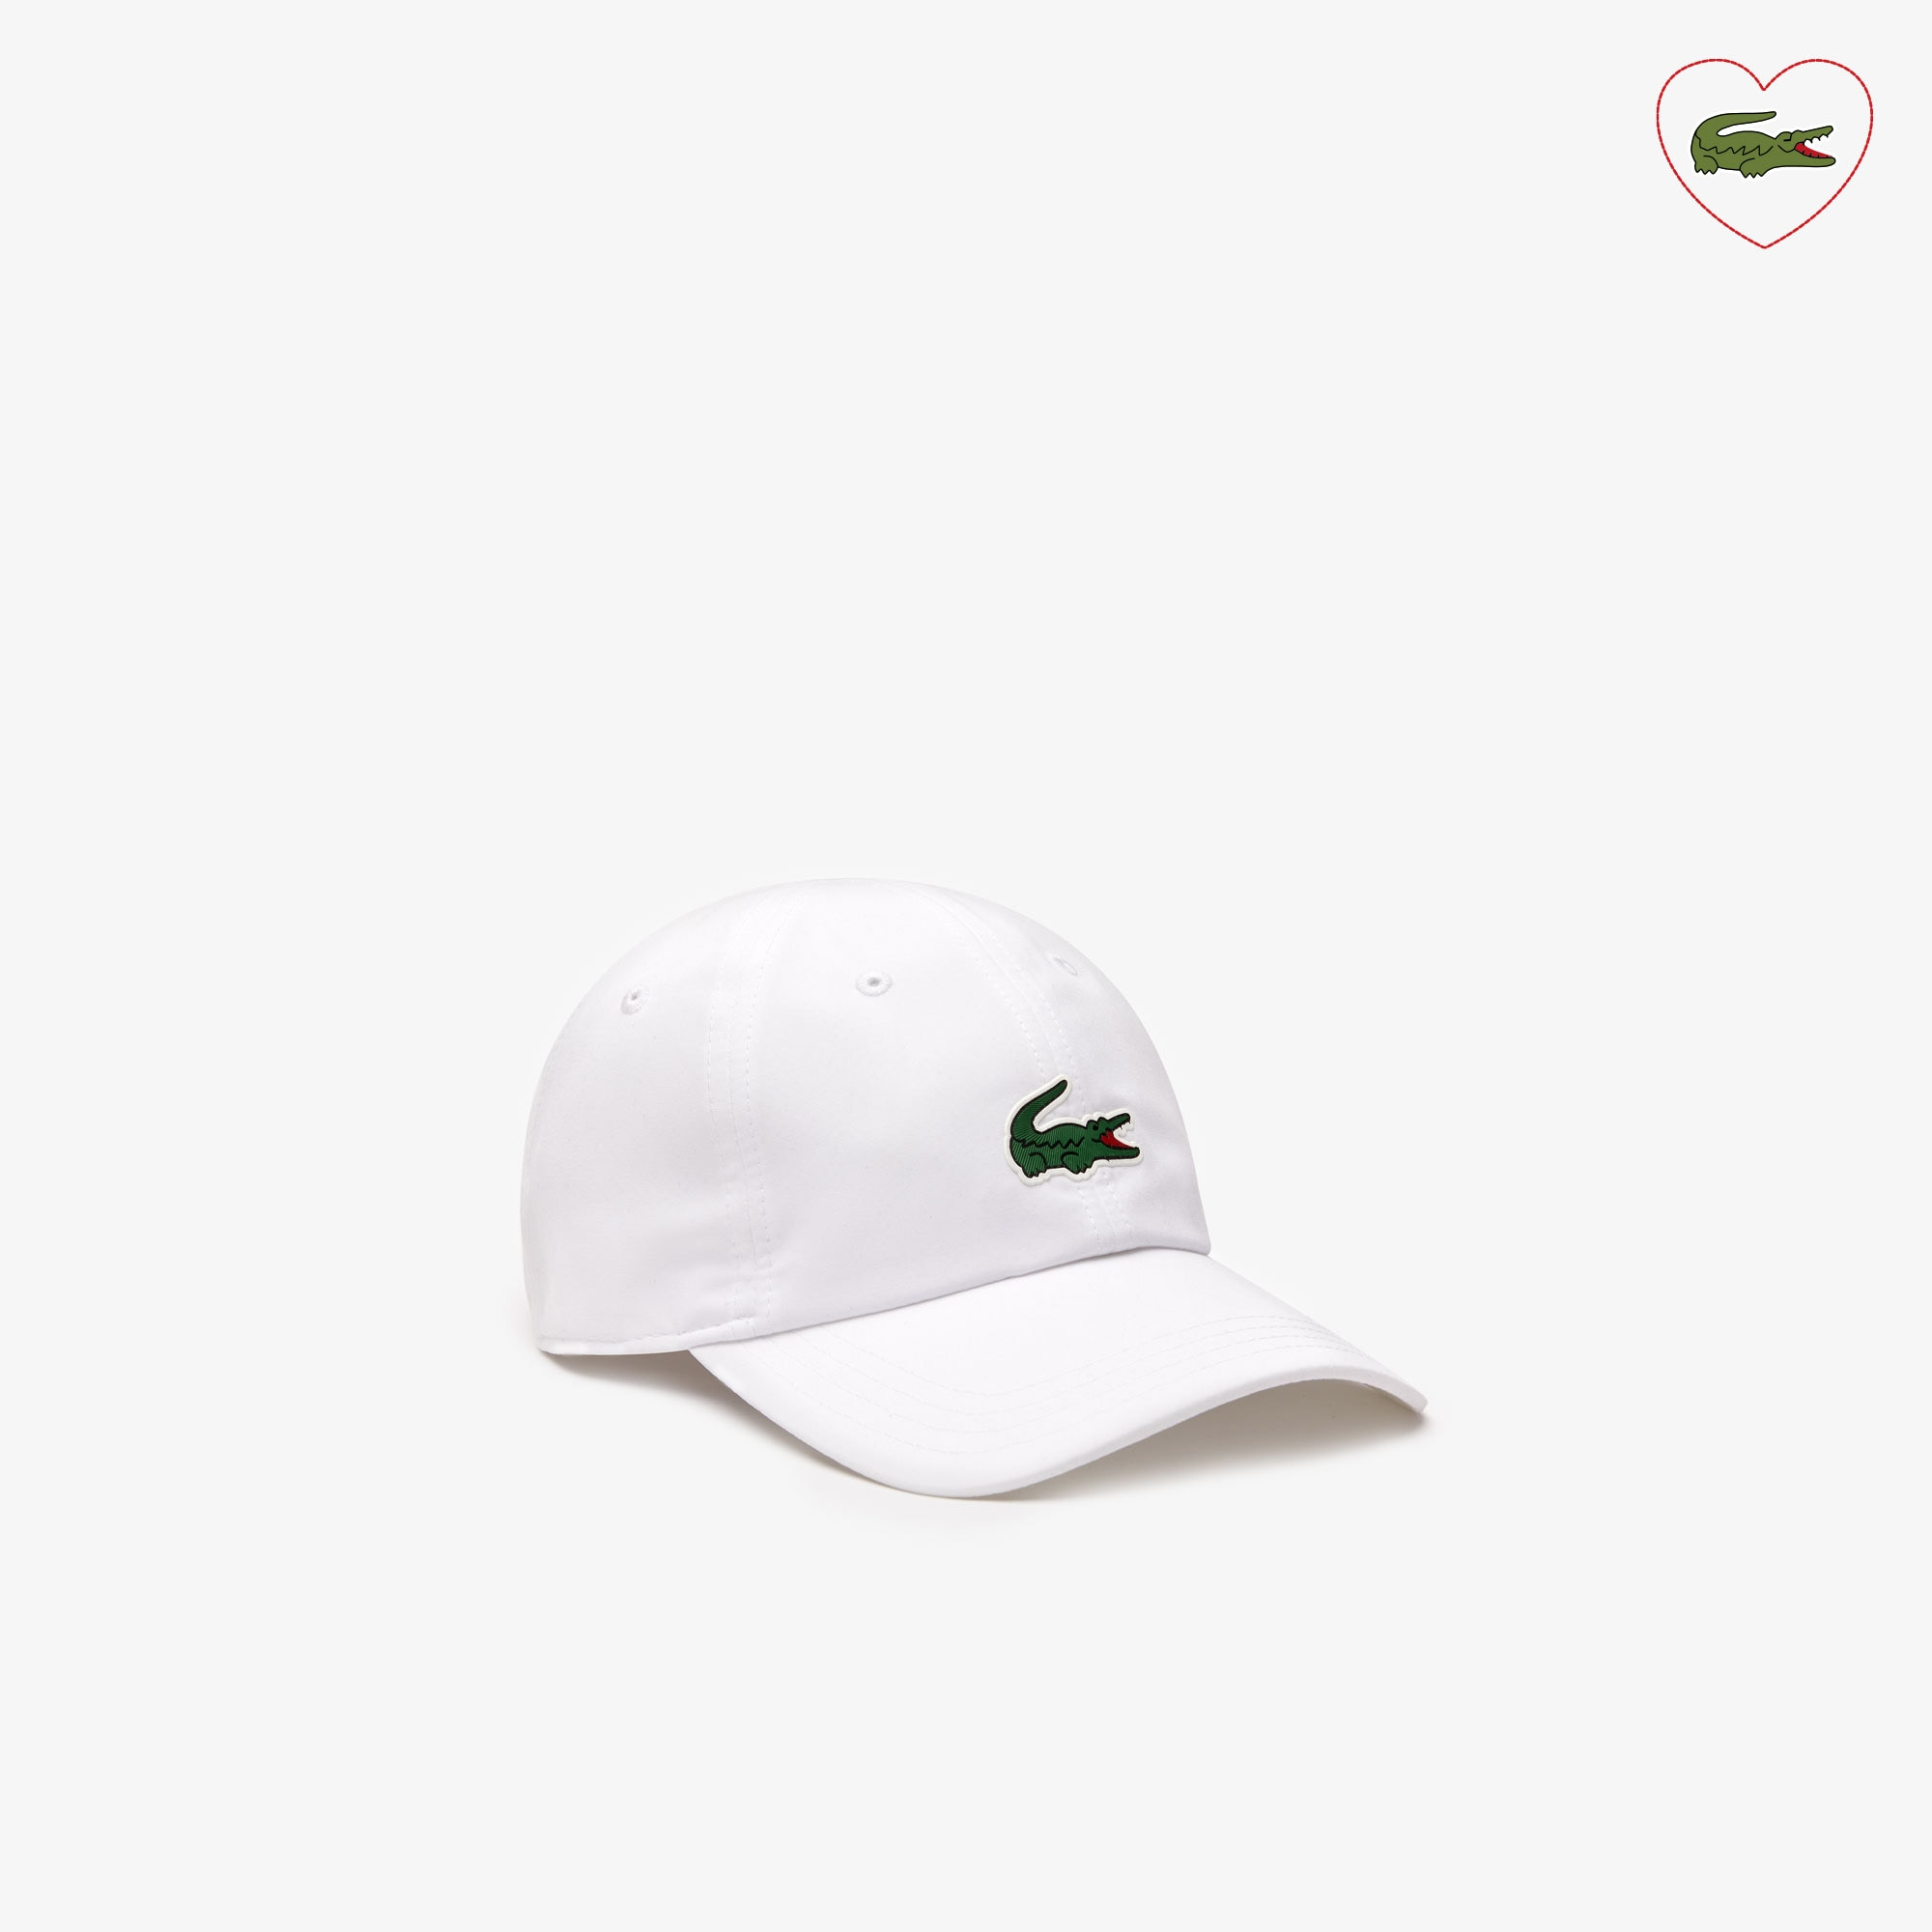 Men's SPORT Novak Djokovic Tennis Cap